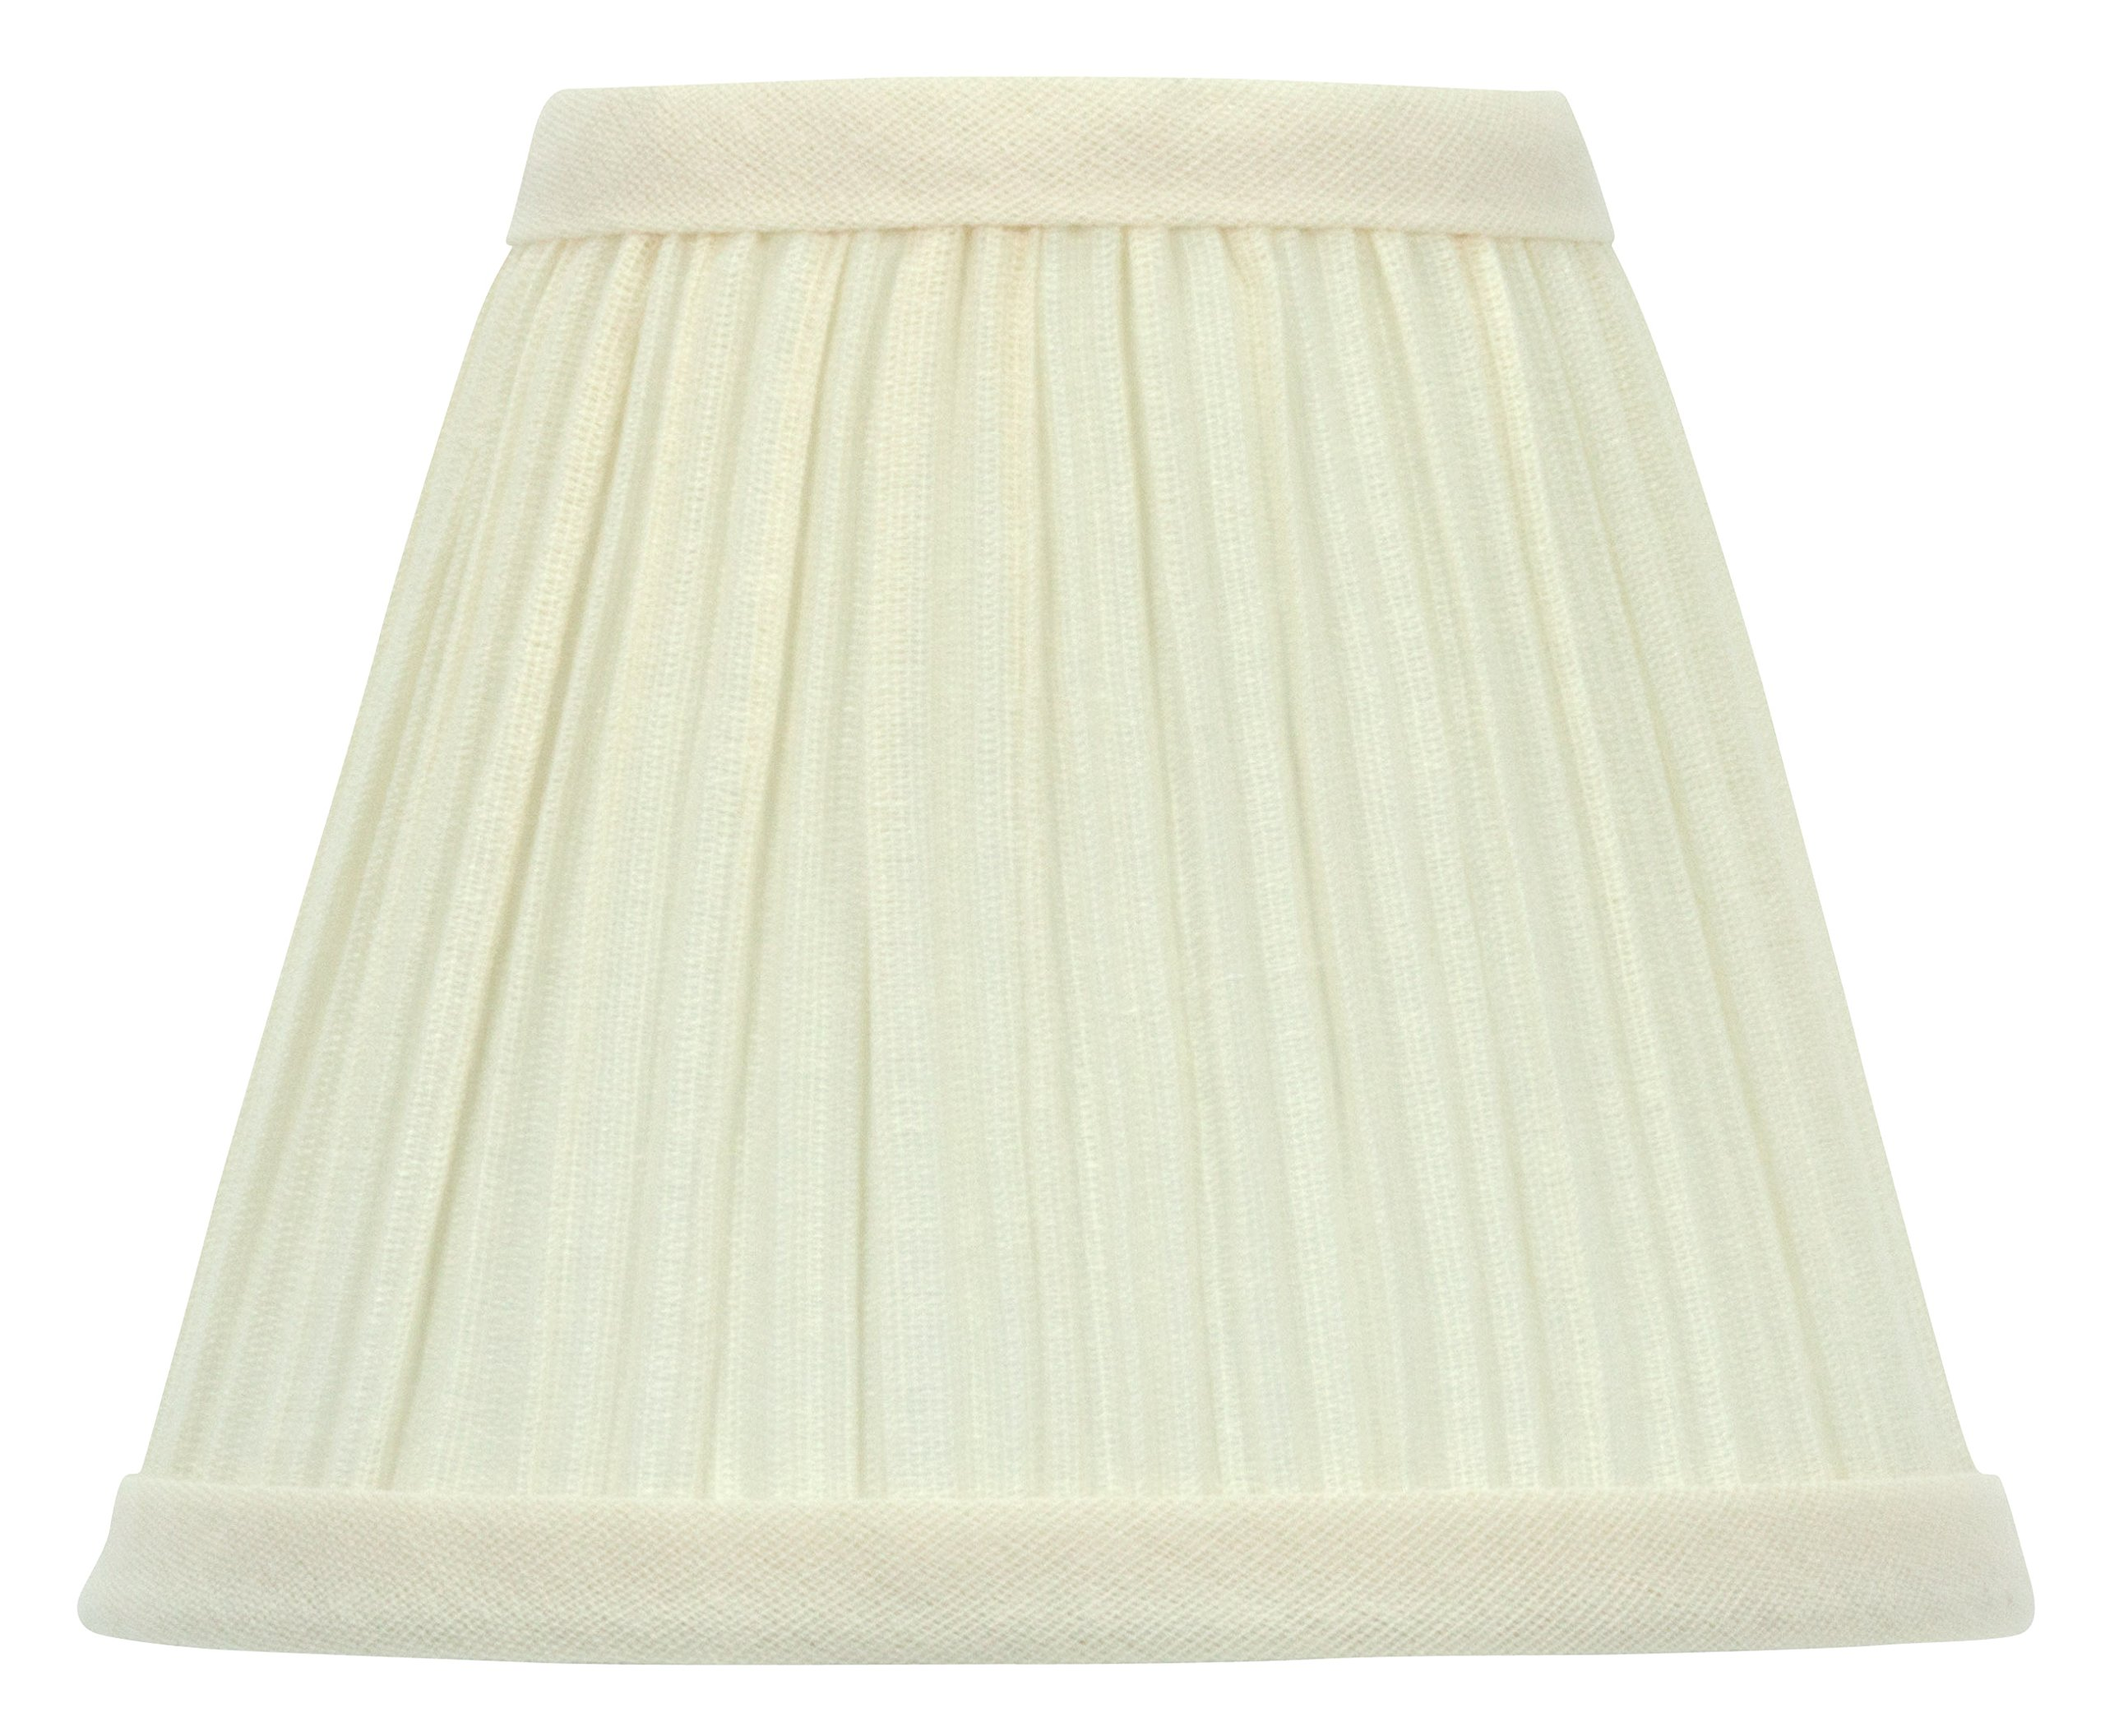 Upgradelights White Pleated Empire 8 Inch Clip On Lampshade Replacement